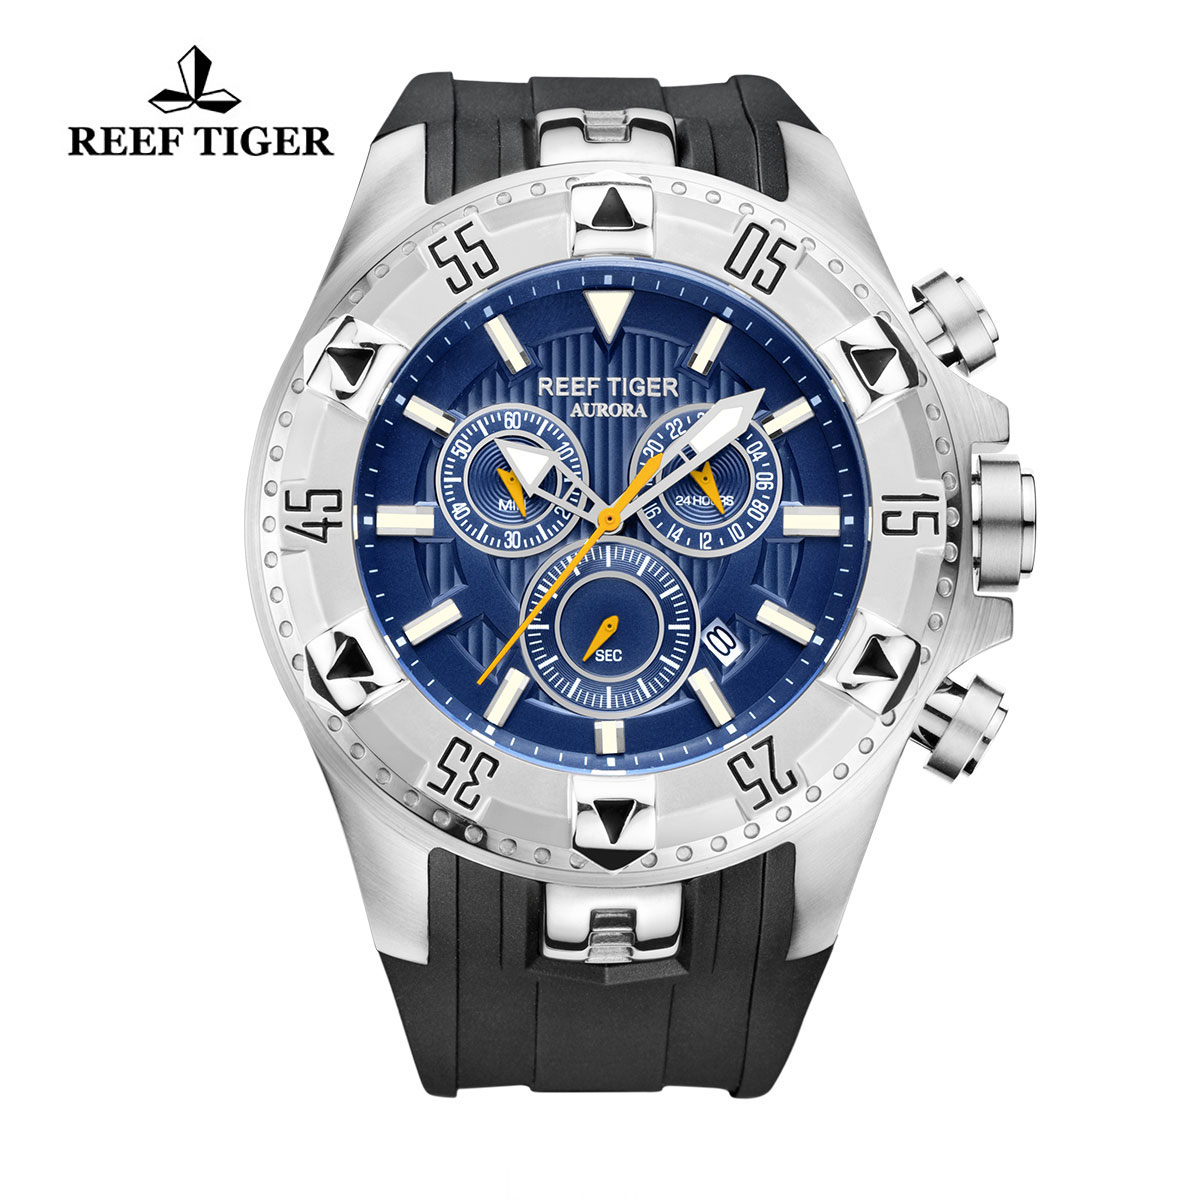 Reef Tiger Hercules Sport Watches Chronograph Steel Case Black Rubber Blue Dial Watch RGA303-YLB